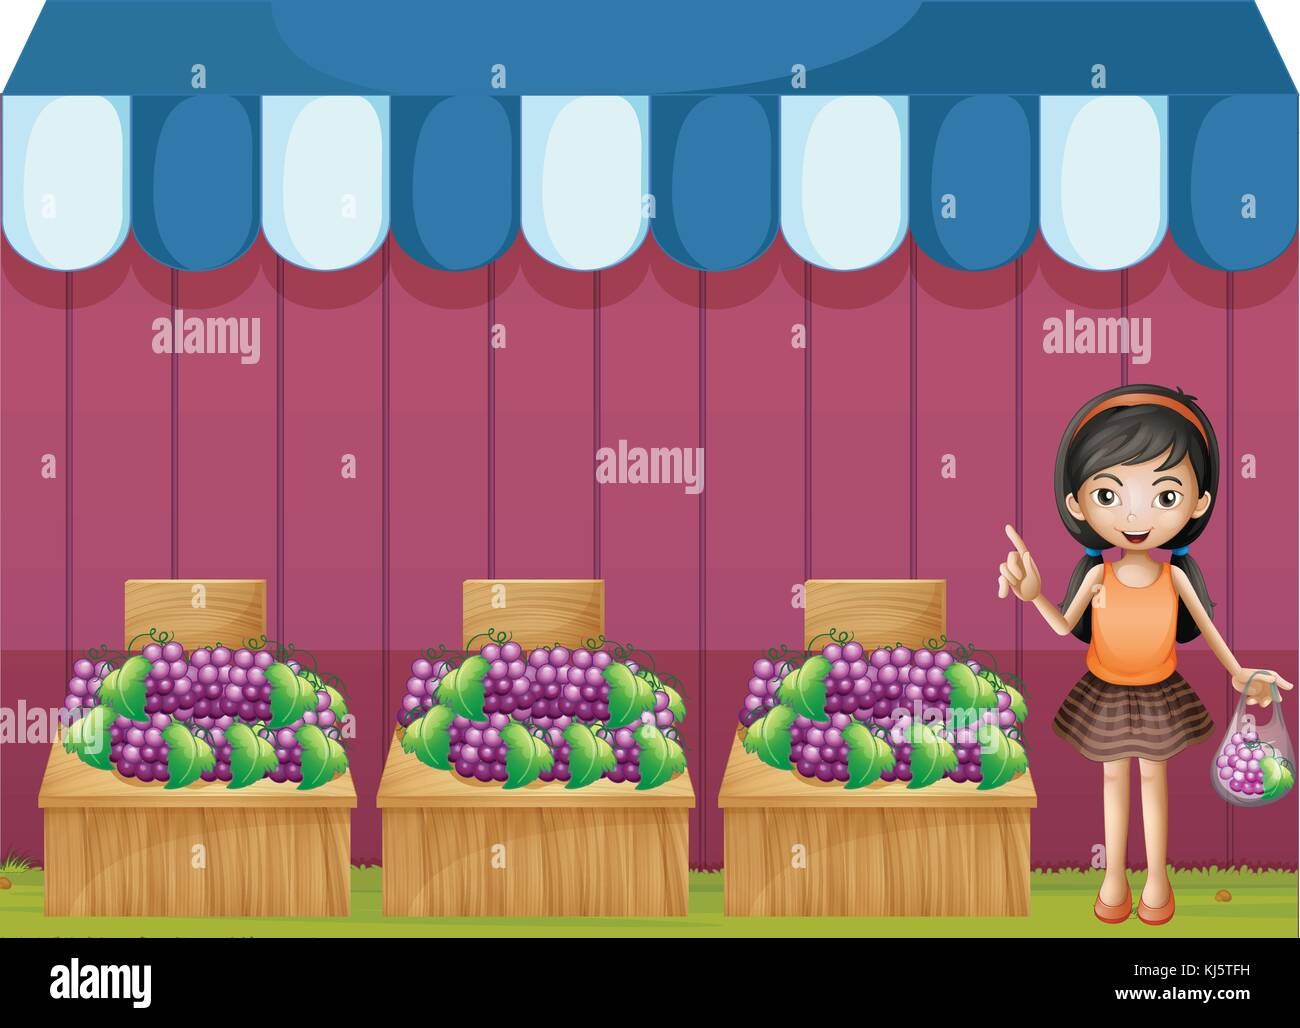 Illustration of a girl selling grapes on a white background Stock Vector